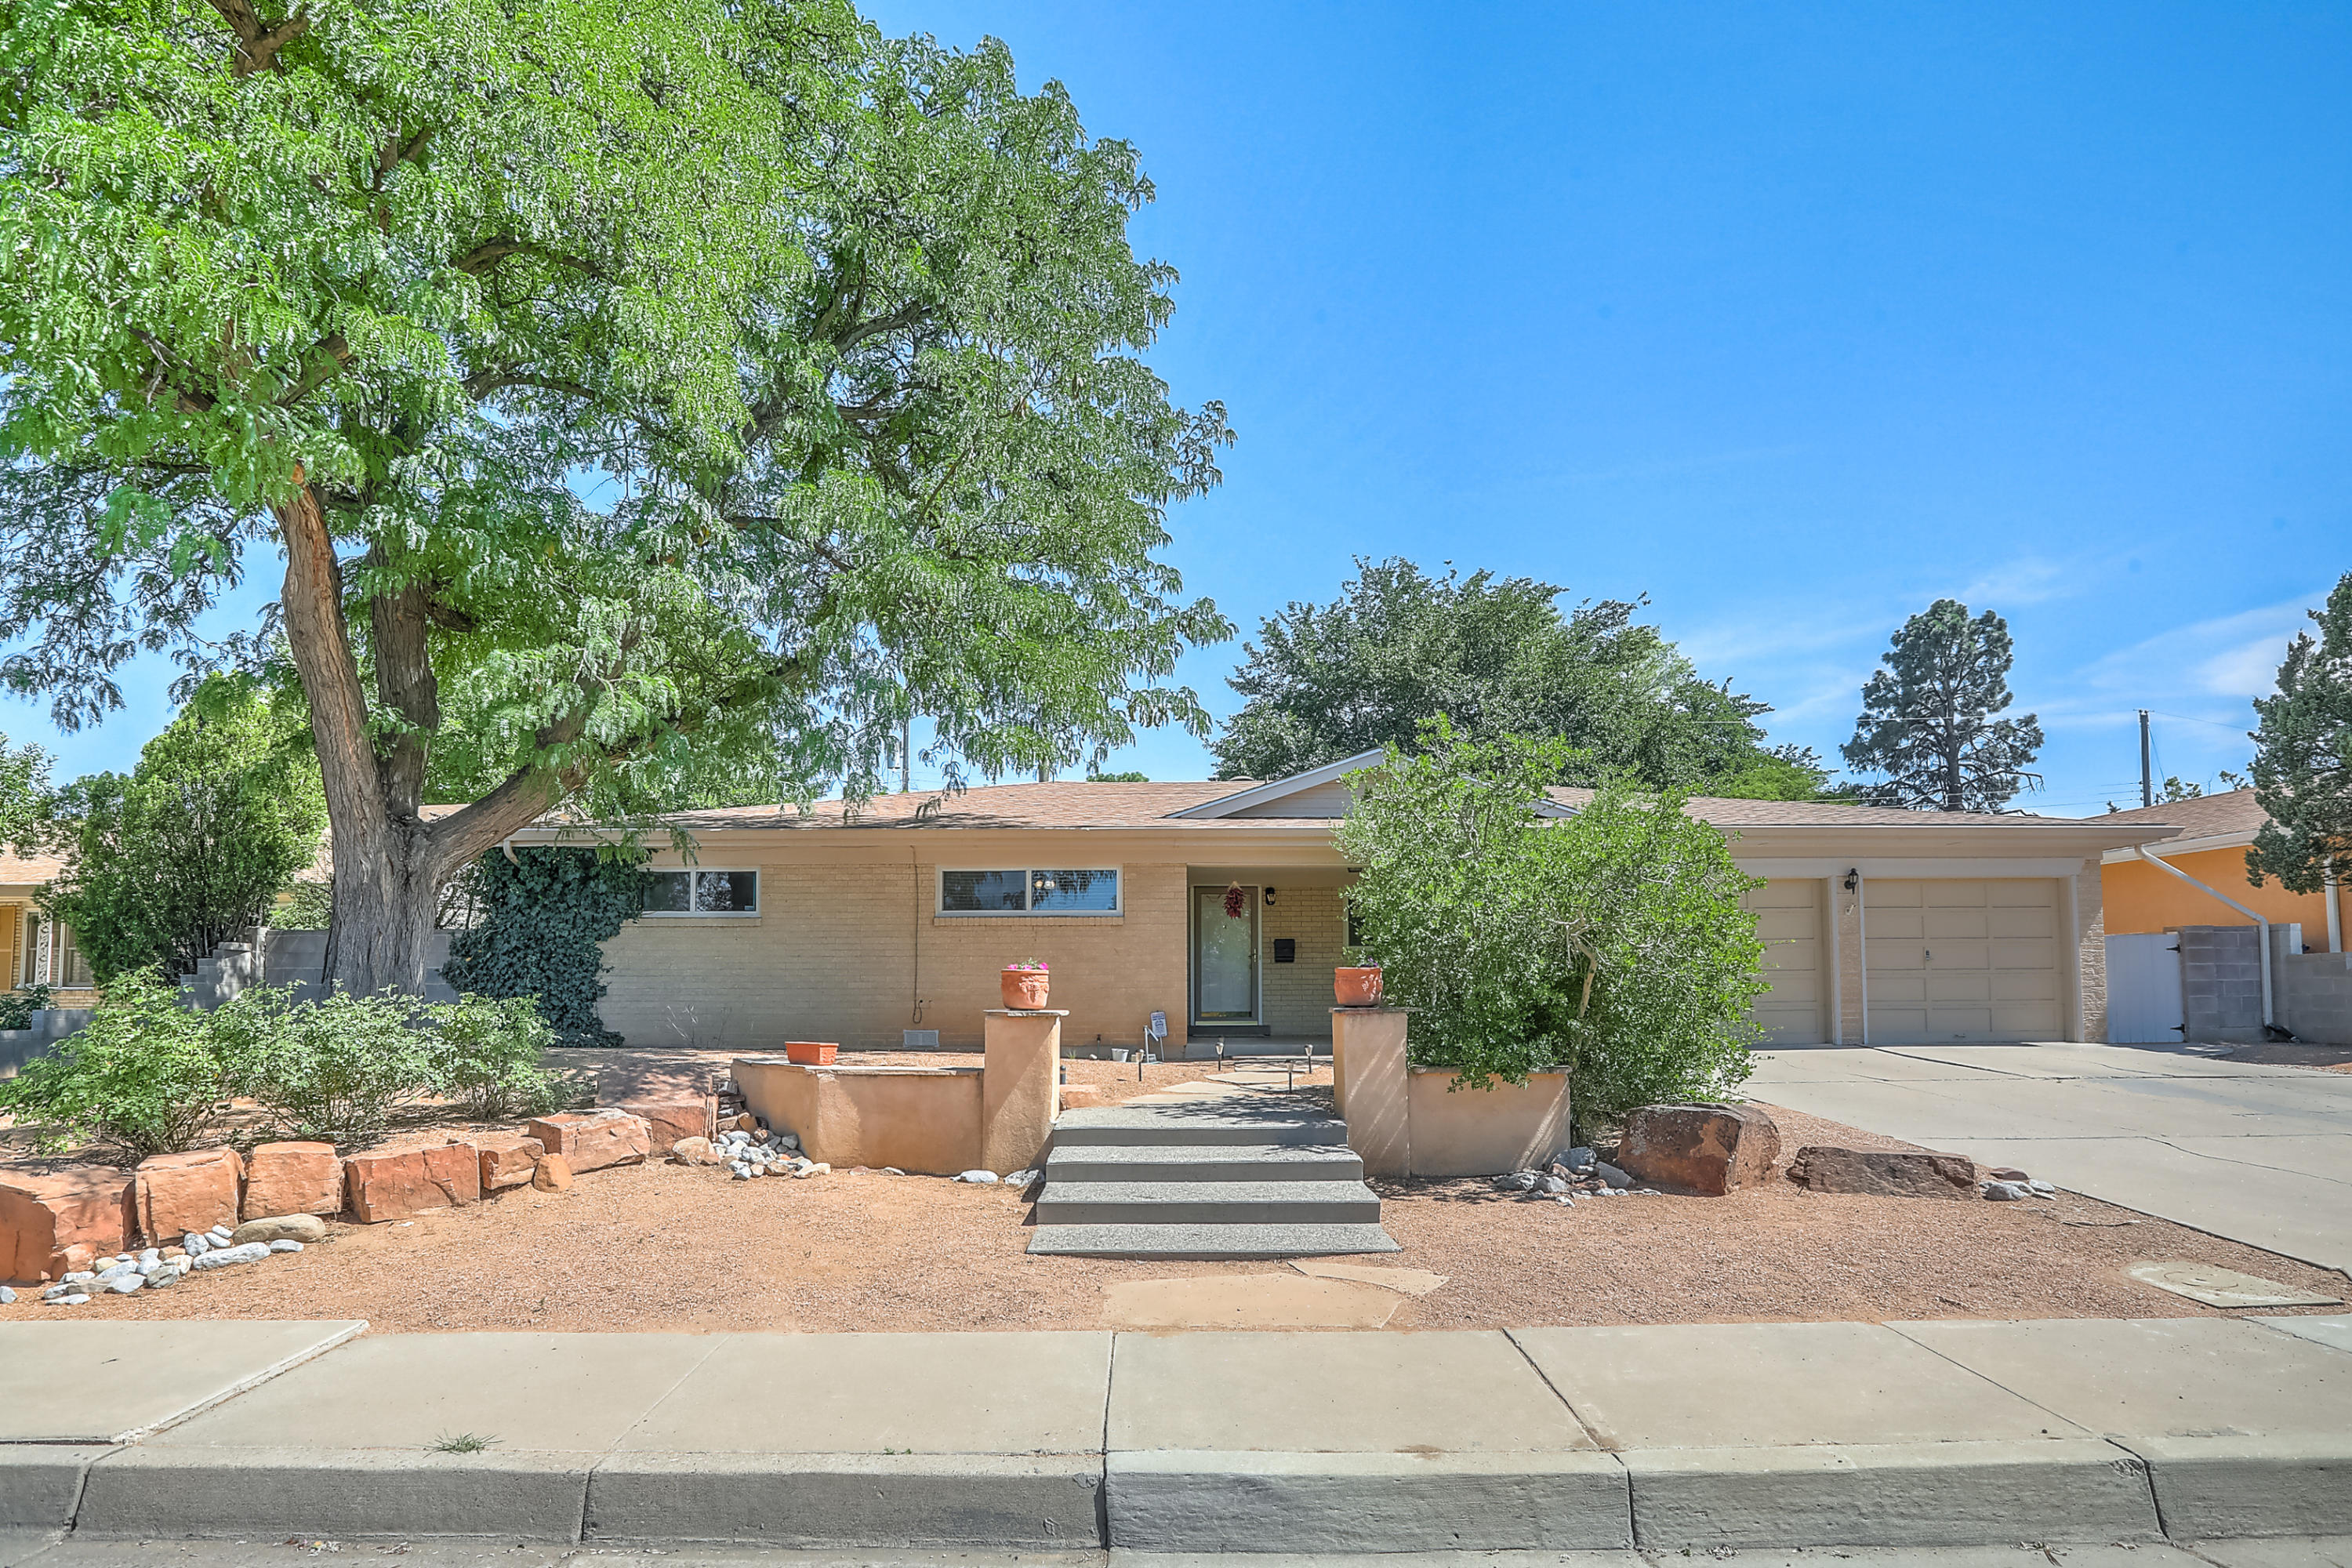 An truly exquisite, rare find in the UNM area. Prime location. Magnificently updated and cared for. Desirable, brick, single story floorplan boasting a modern renovated eat-in kitchen. Incredible natural lighting. Easy maintenance tile flooring throughout the high traffic areas. Two living areas. One featuring warm and inviting wood floors, built-ins, wood burning fireplace, and wet bar. Spacious bedrooms with new carpet. Large covered patio. Fully landscaped backyard retreat with mature trees and lush grass. One year old roof. Refrigerated A/C. Arguably one of the best locations in town. Situated in the heart of the city, tucked away in the tranquility of Netherwood Park. An absolute gem.